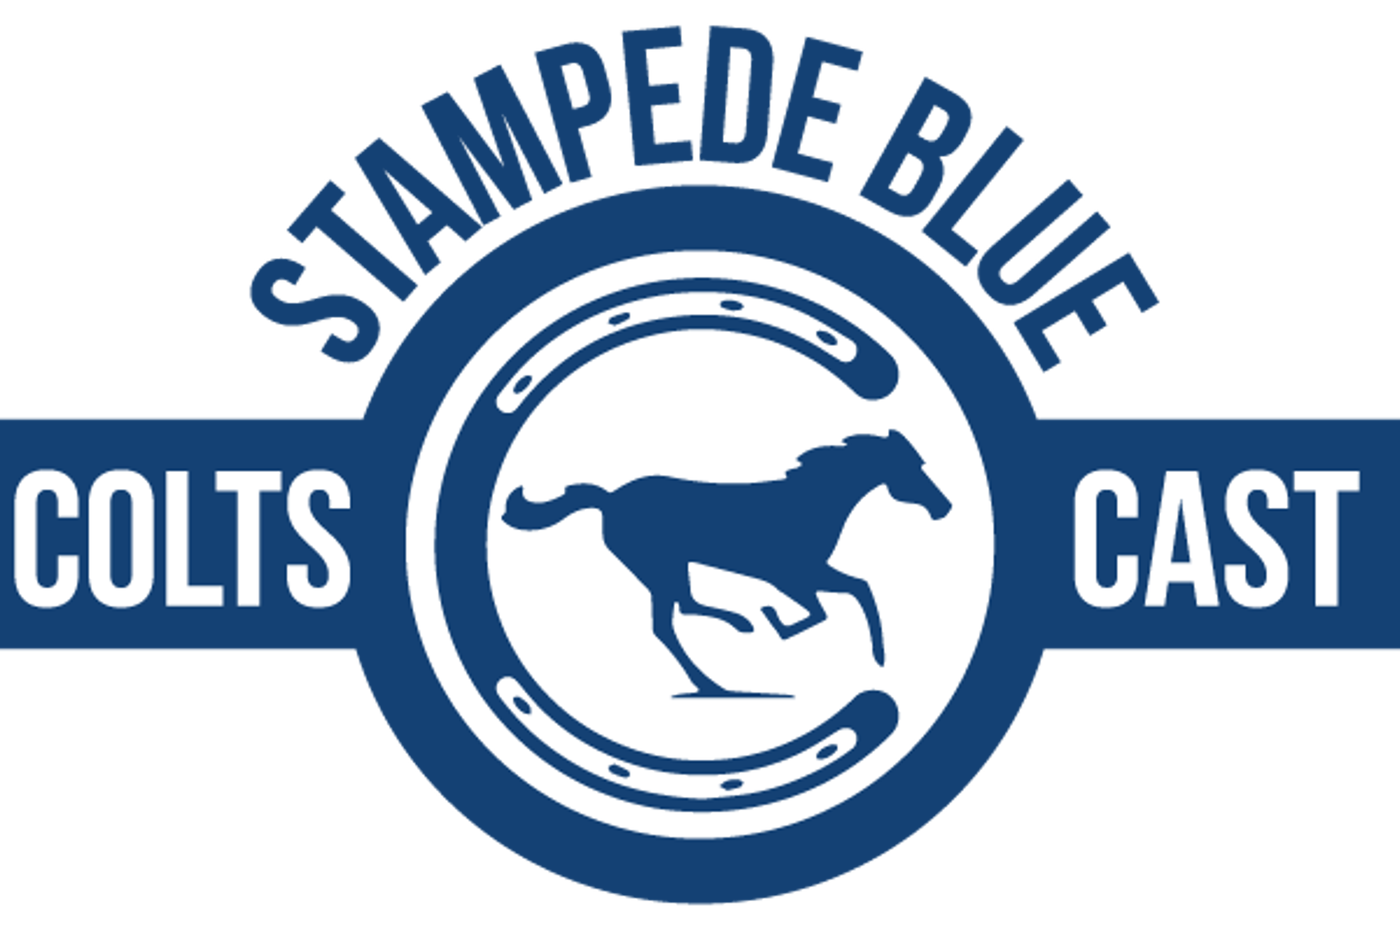 Colts Cast Colts Bounce Back Dominate Vikings 28 11 In Week 2 Win Stampede Blue